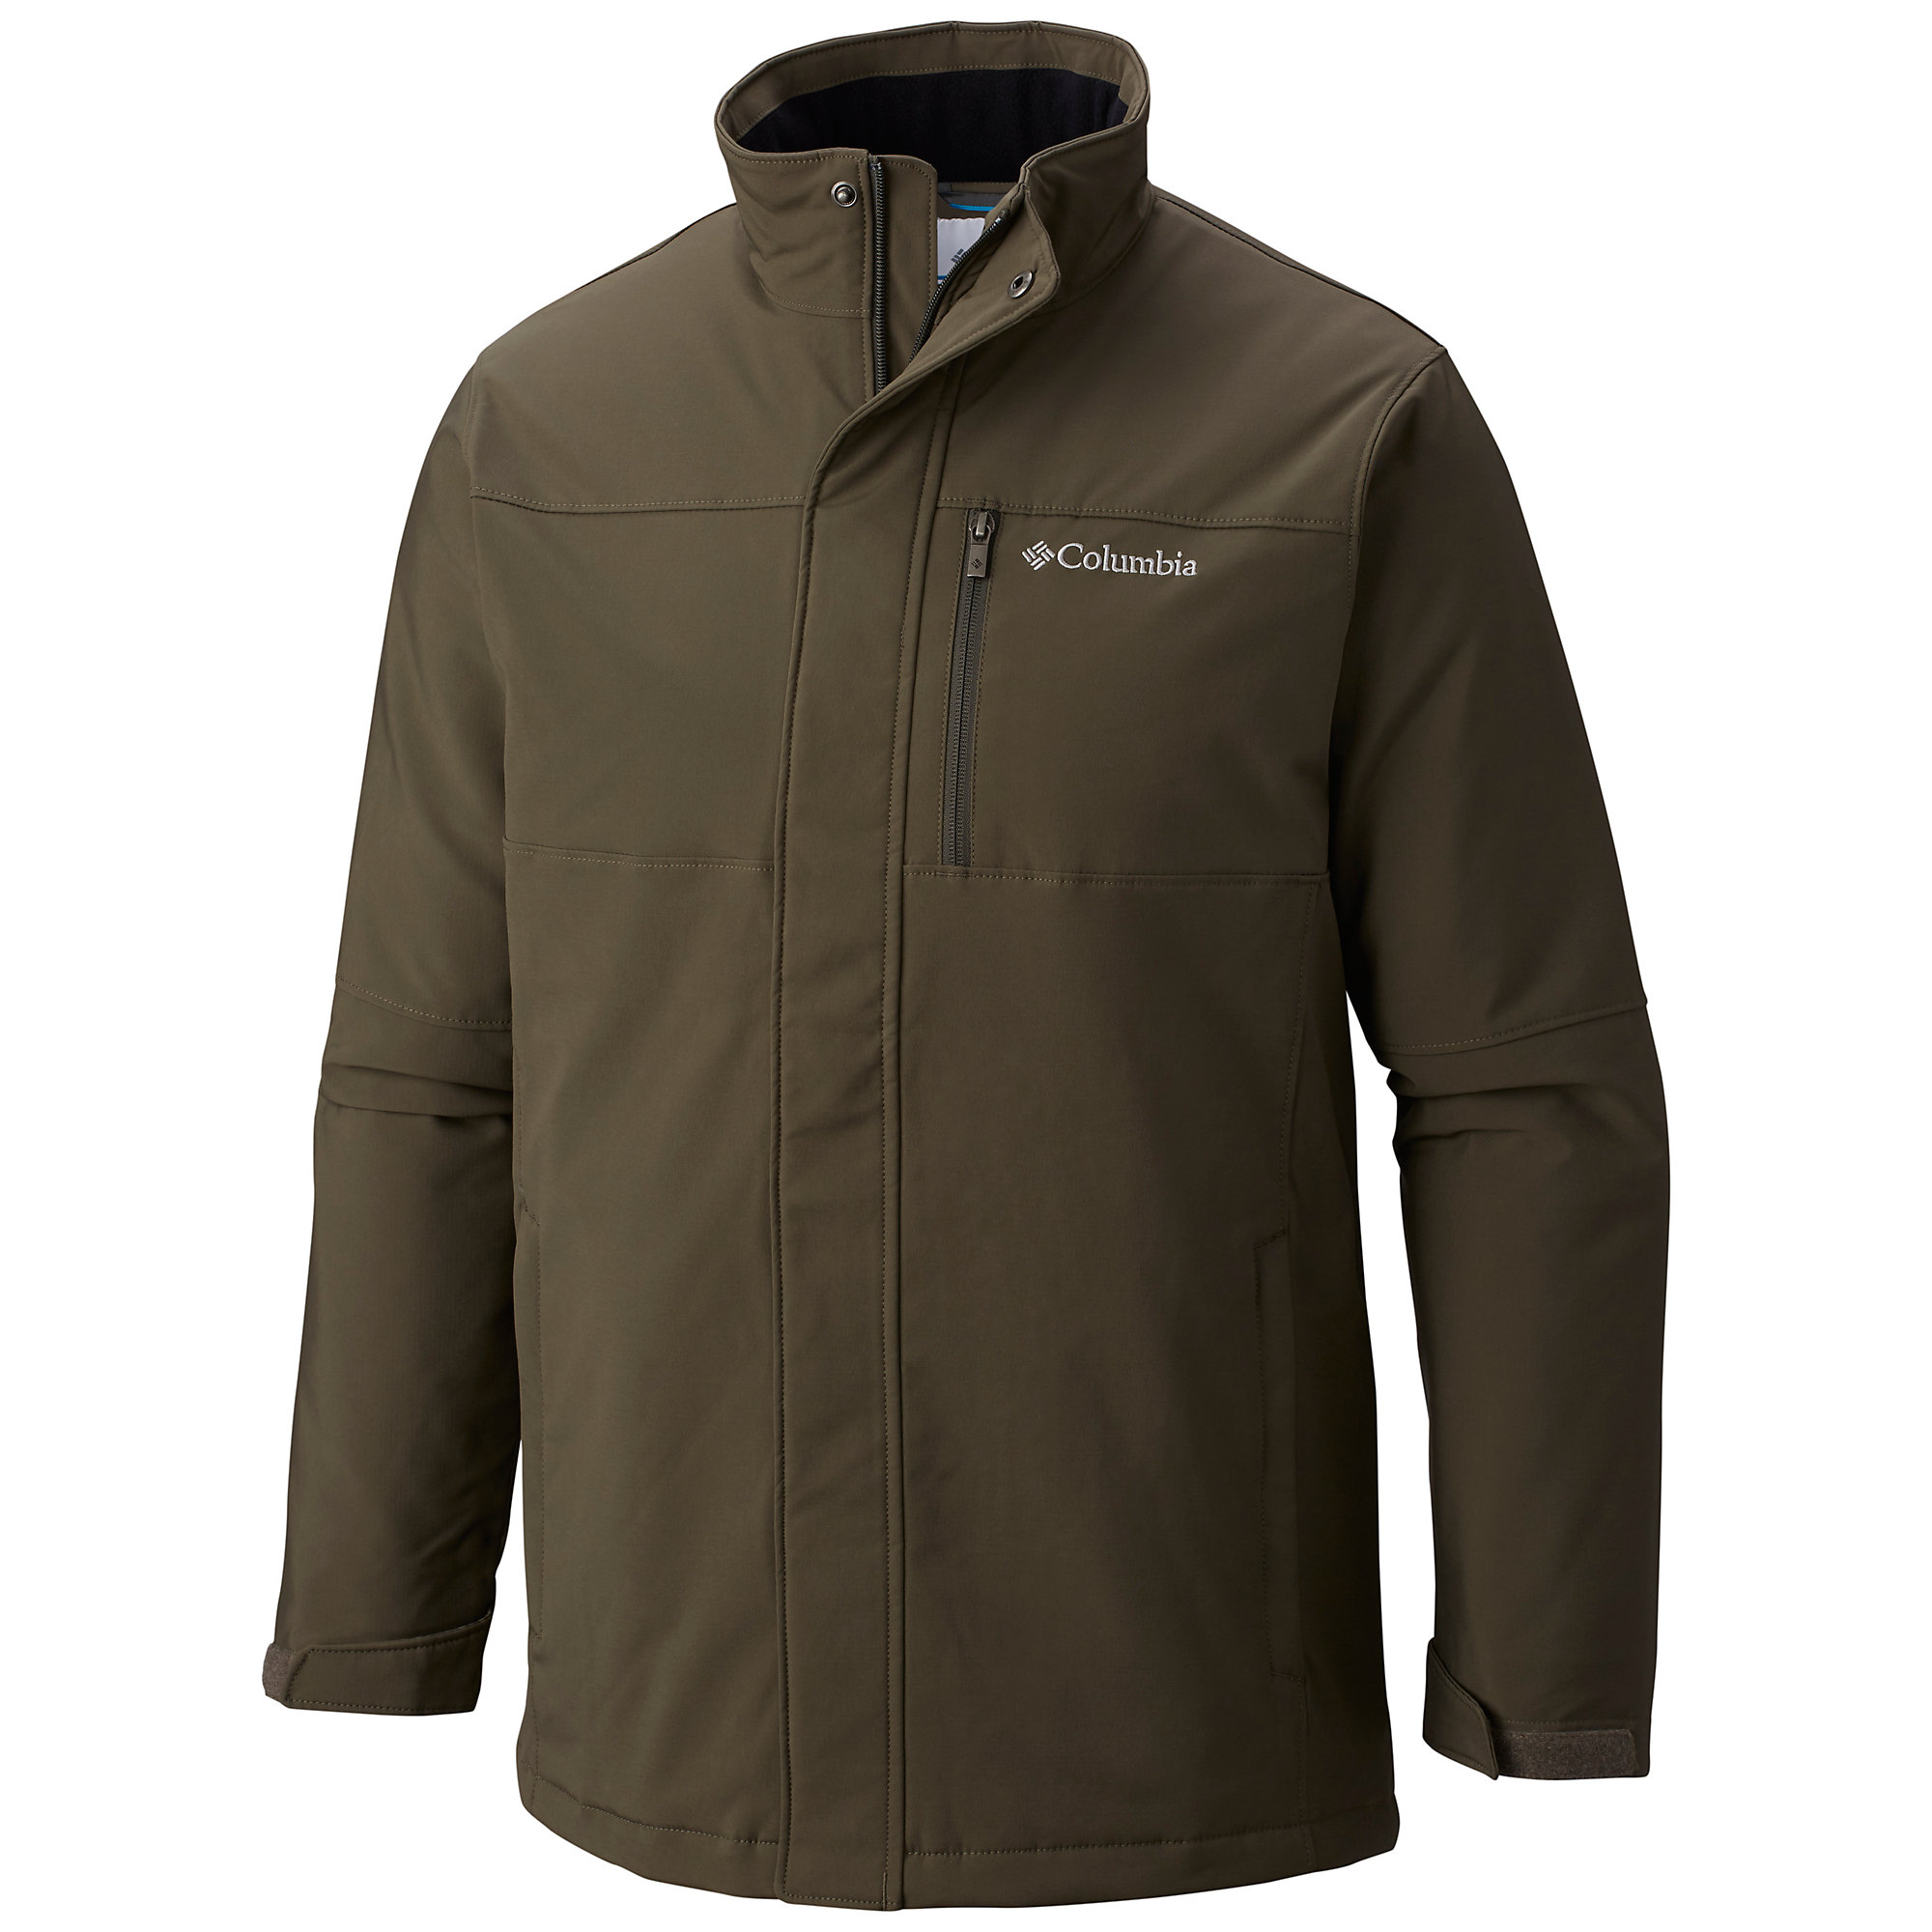 Columbia Steel Ledge Insulated Softshell